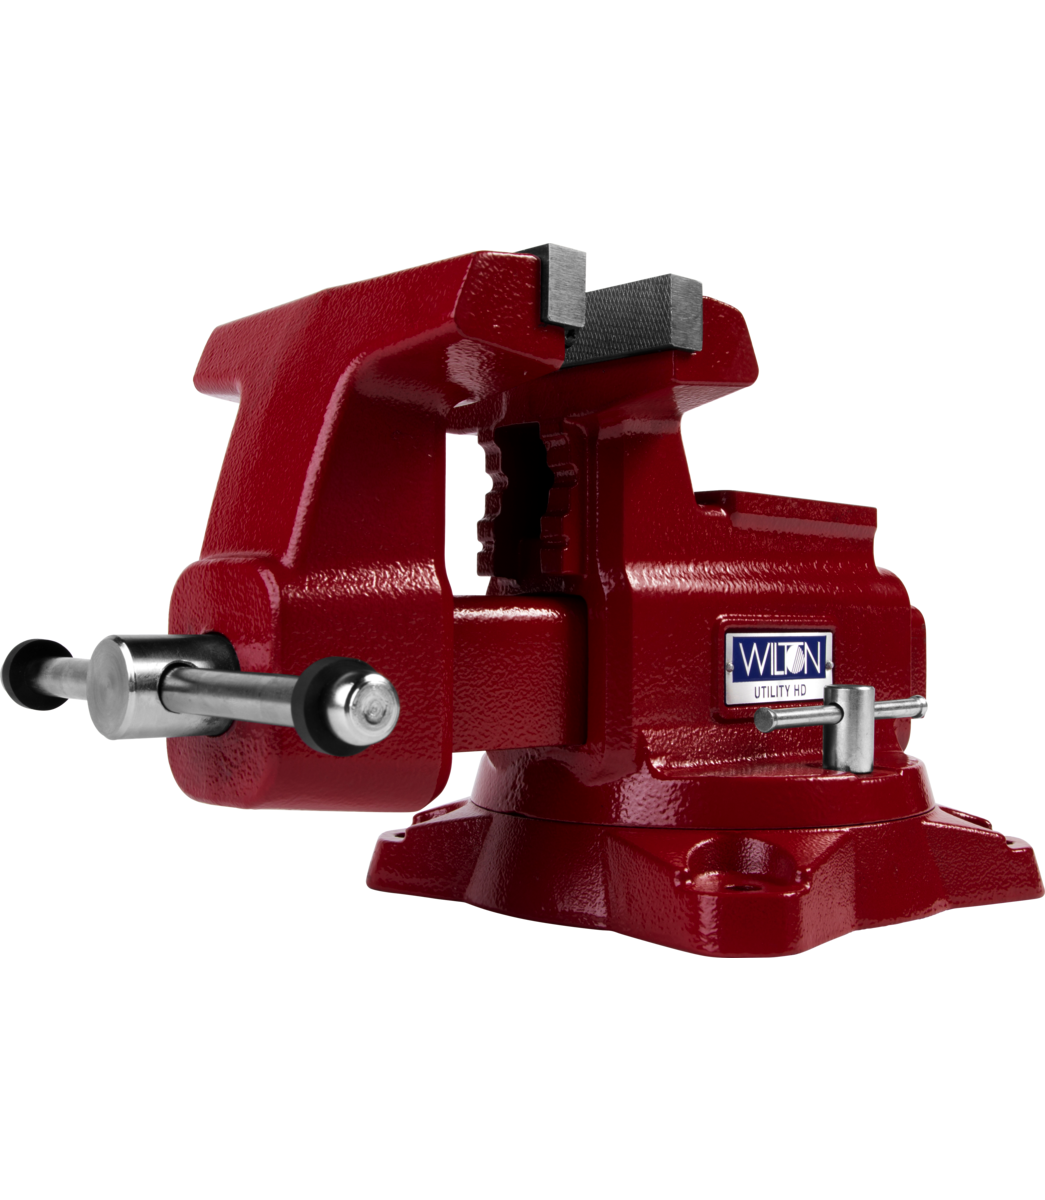 "Manual: Utility HD Bench Vise 6-1/2"" Jaw Width, 6-1/4"" Jaw Opening, 360° Swivel Base"